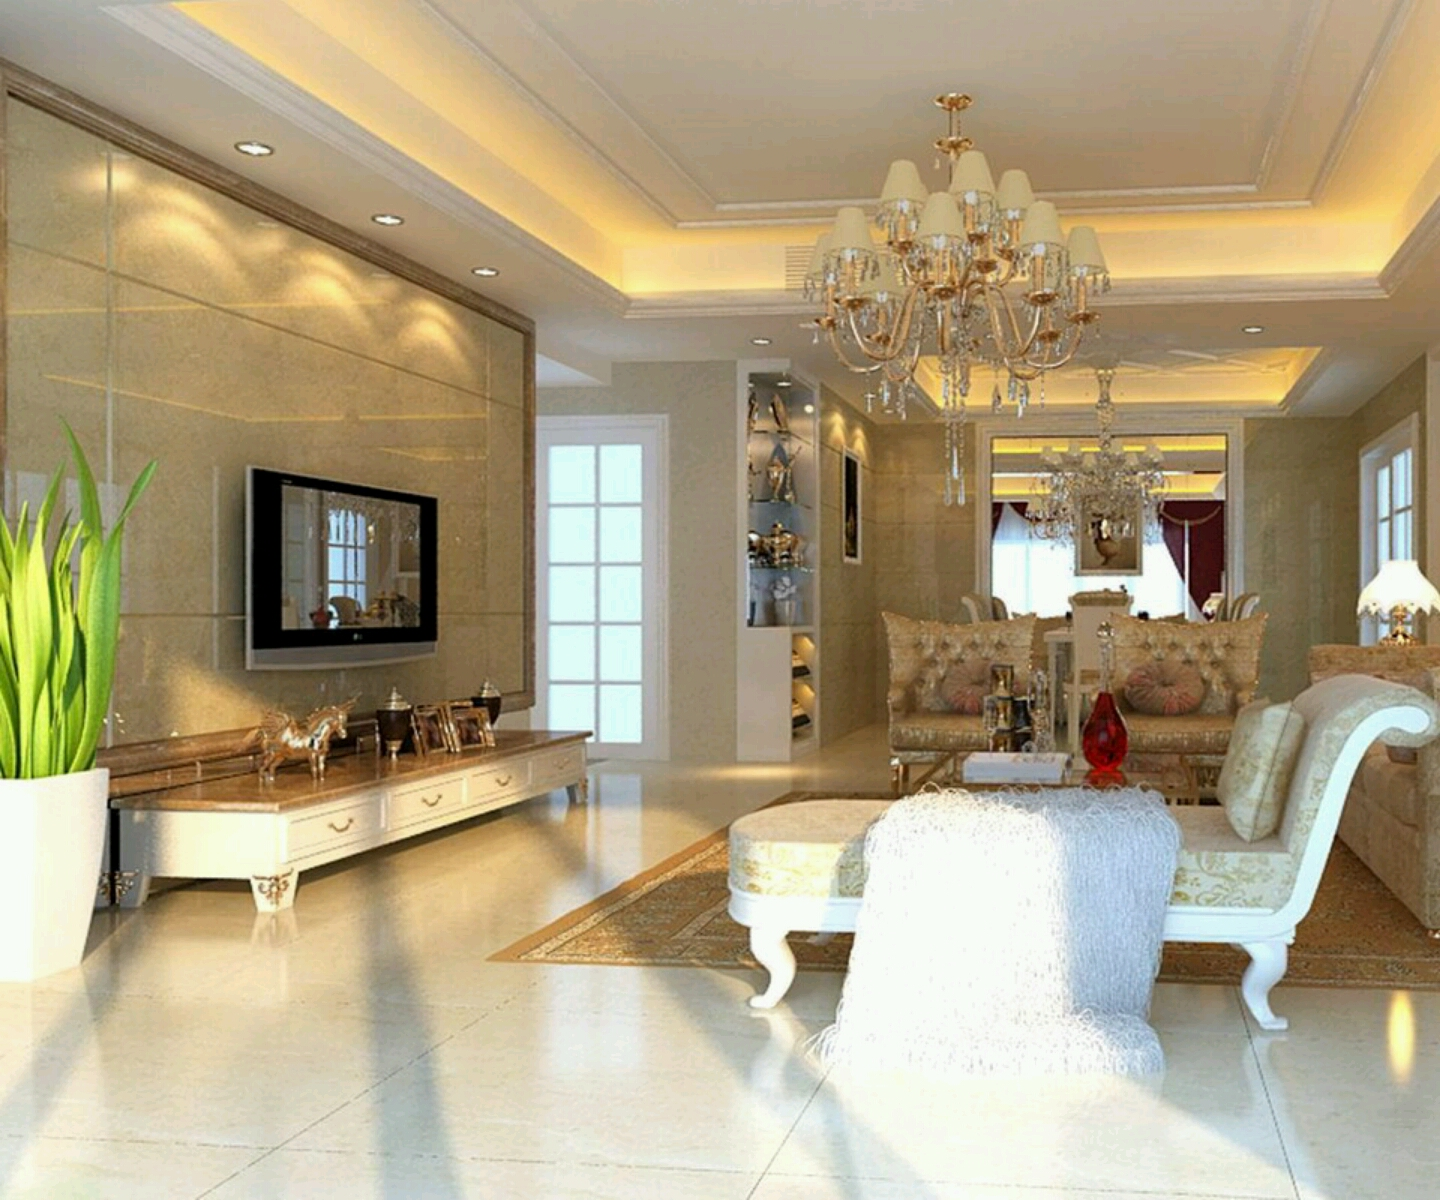 interiors for home luxury homes interior decoration living room designs ideas. Interior Design Ideas. Home Design Ideas